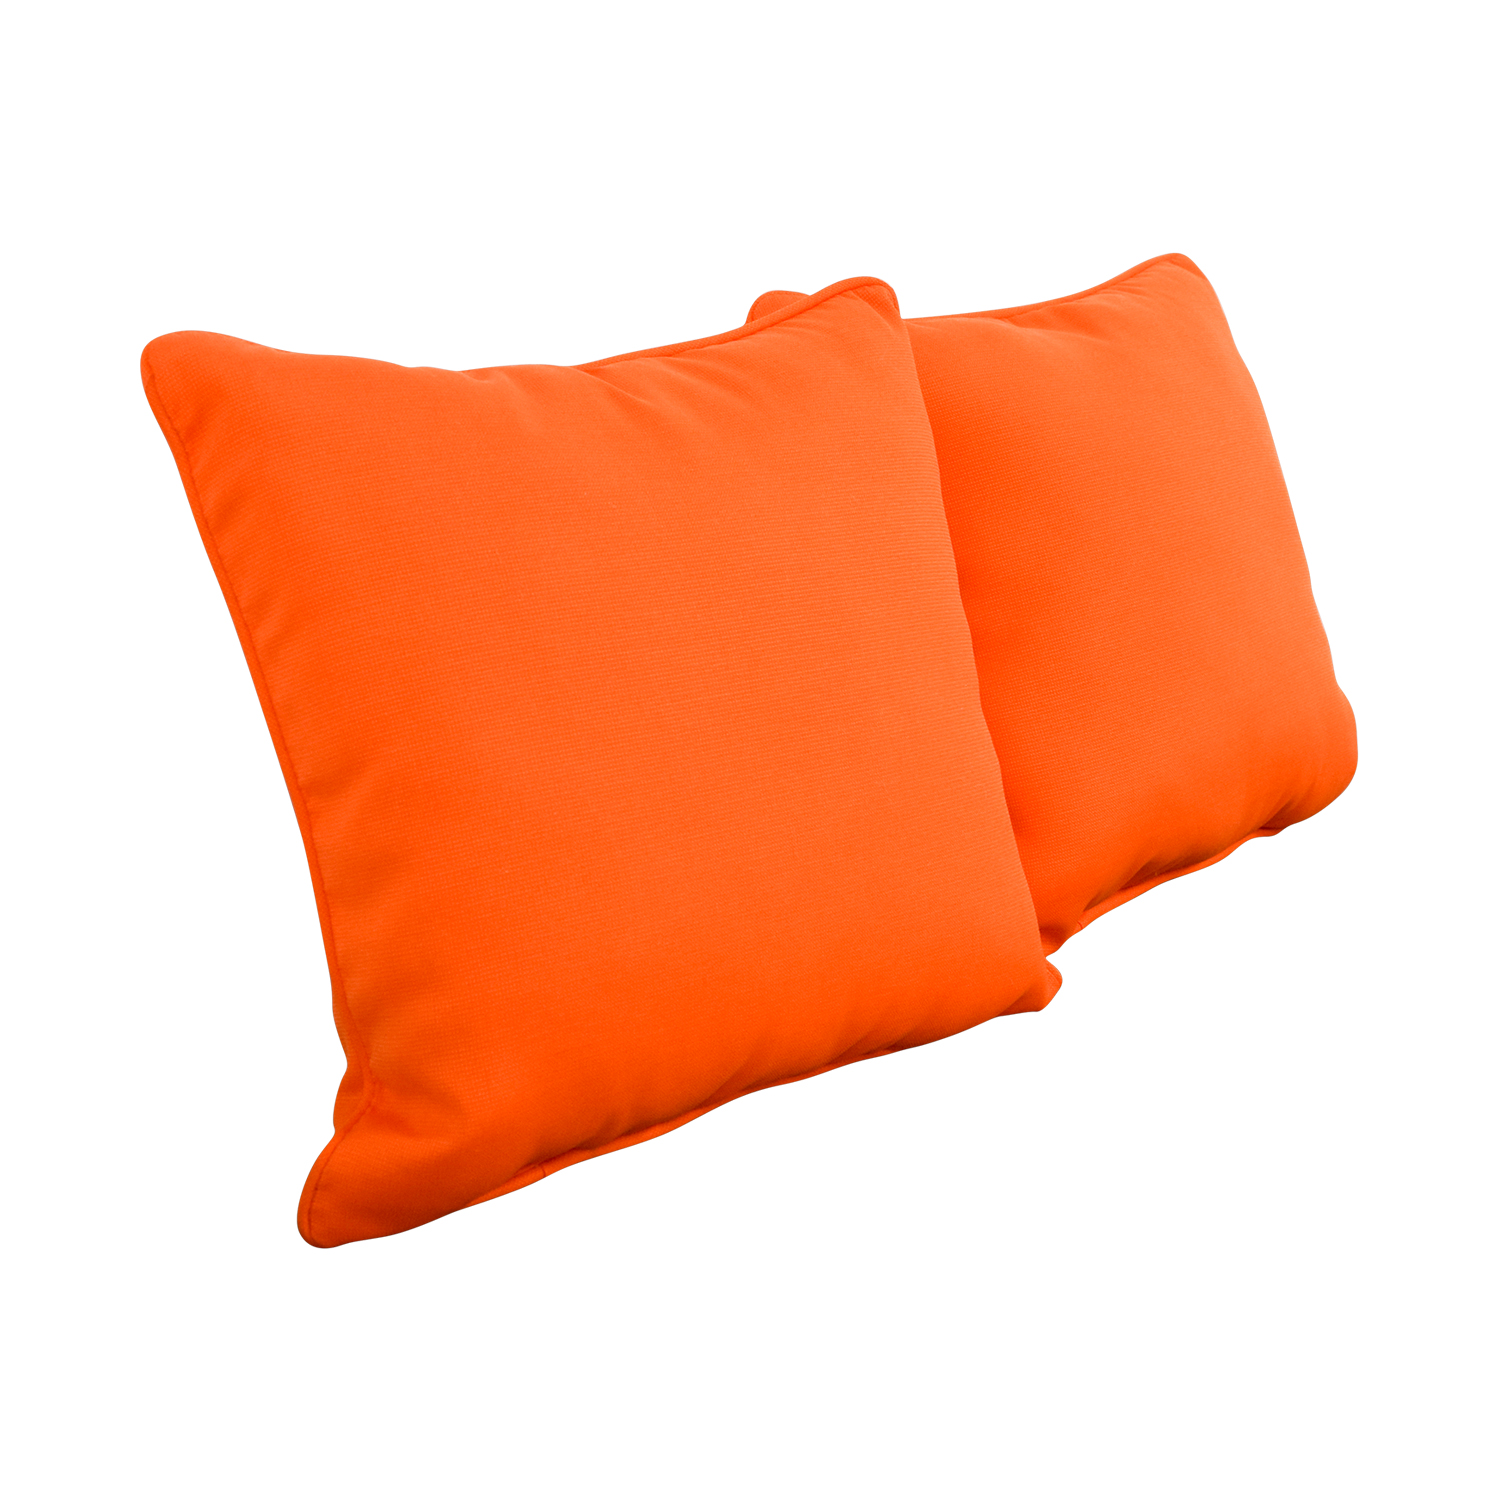 Pillow Perfect Pillow Perfect Sundeck Corded Orange Throw Pillows coupon